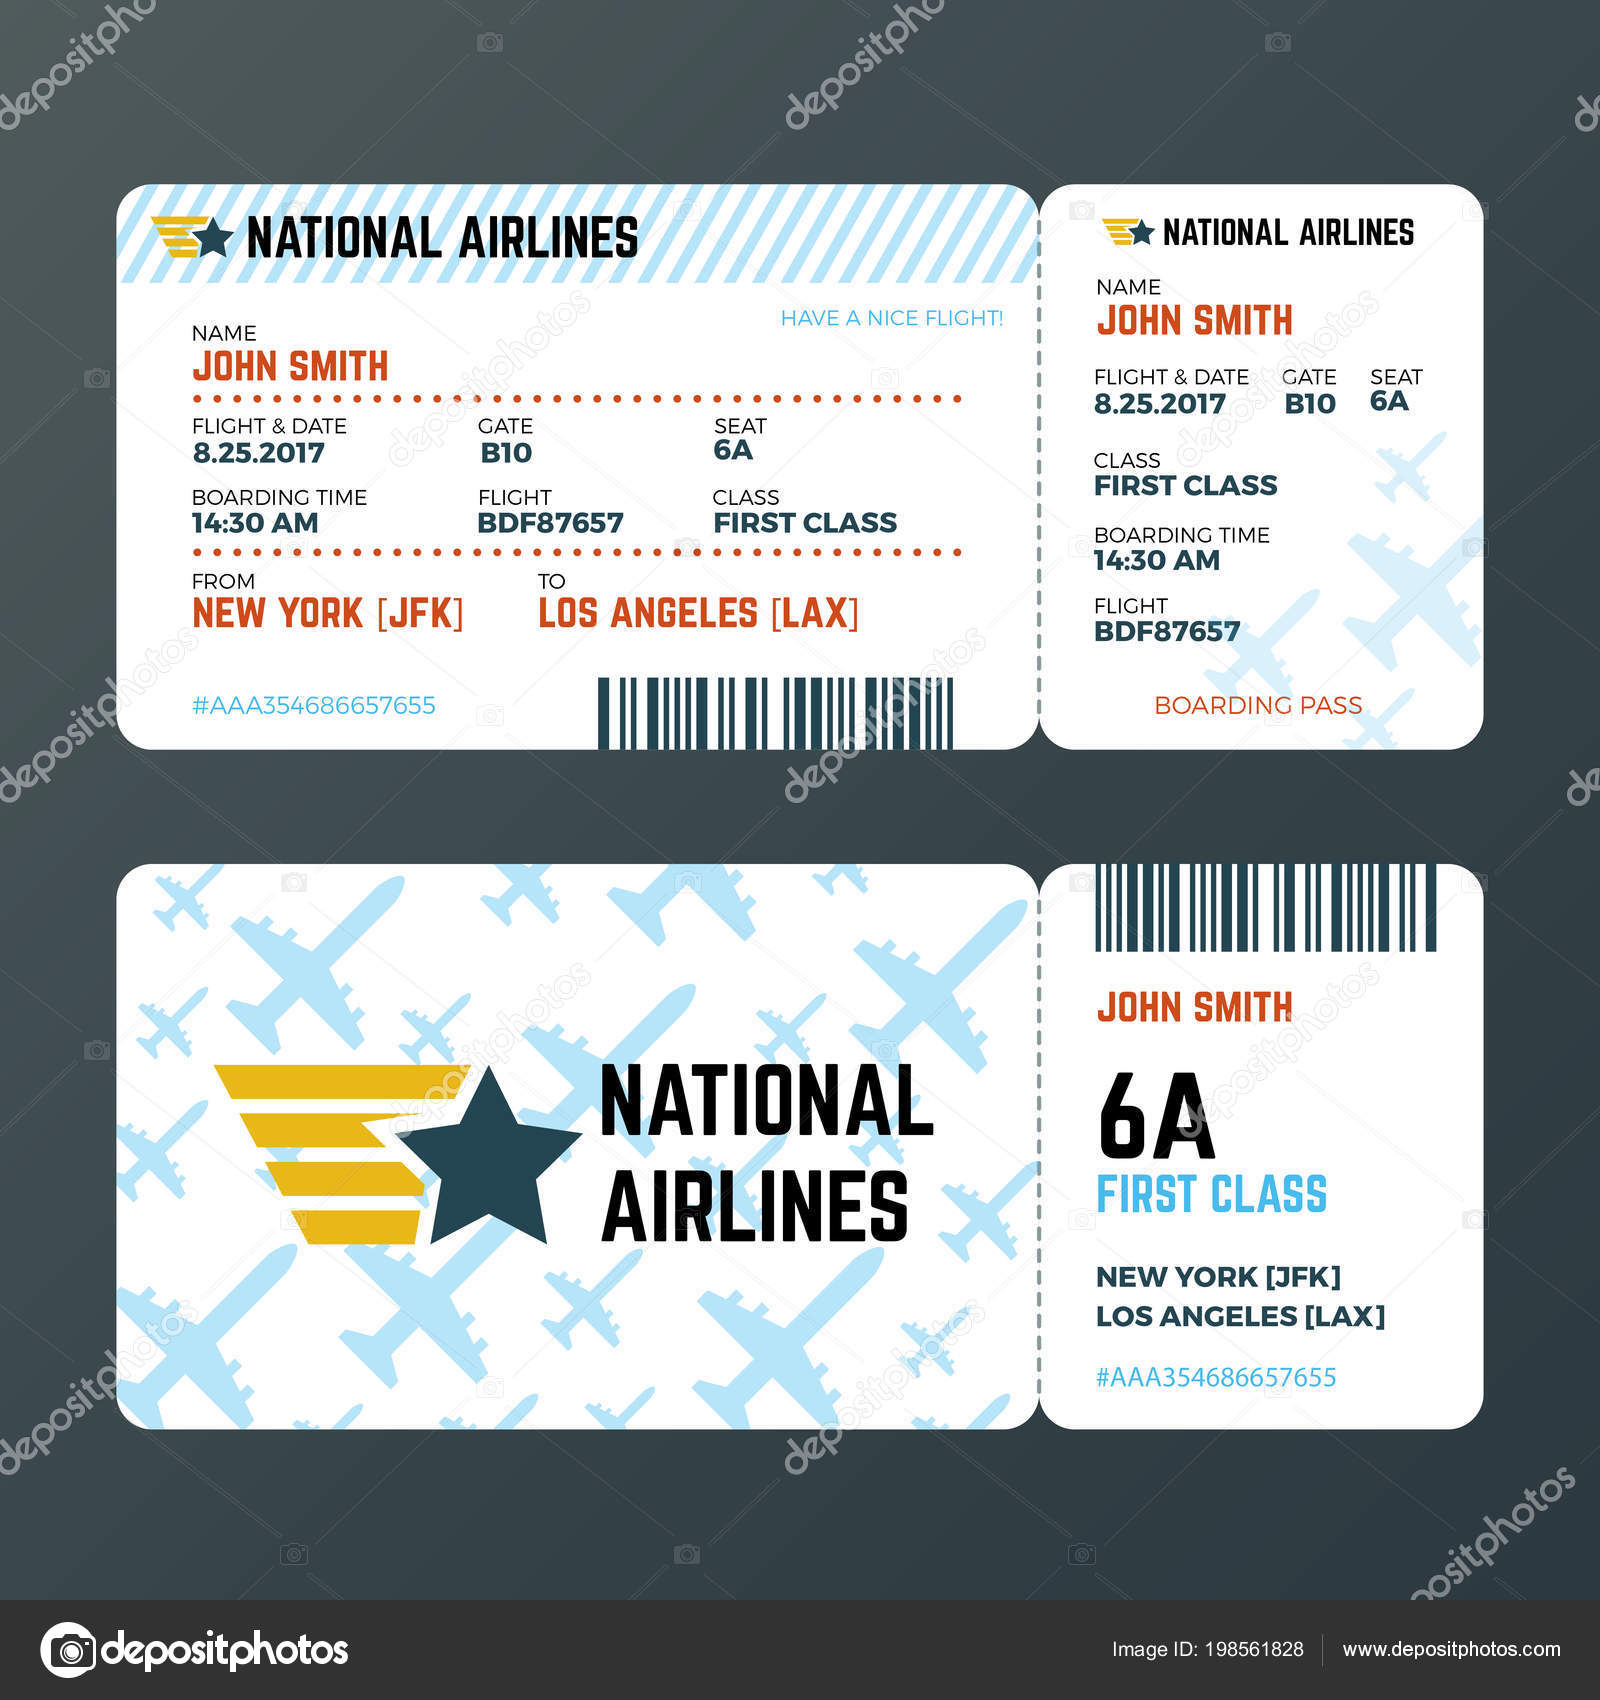 Billet Vol Avion Vol Boarding Pass Billet Isolé Vecteur Modèle De Image